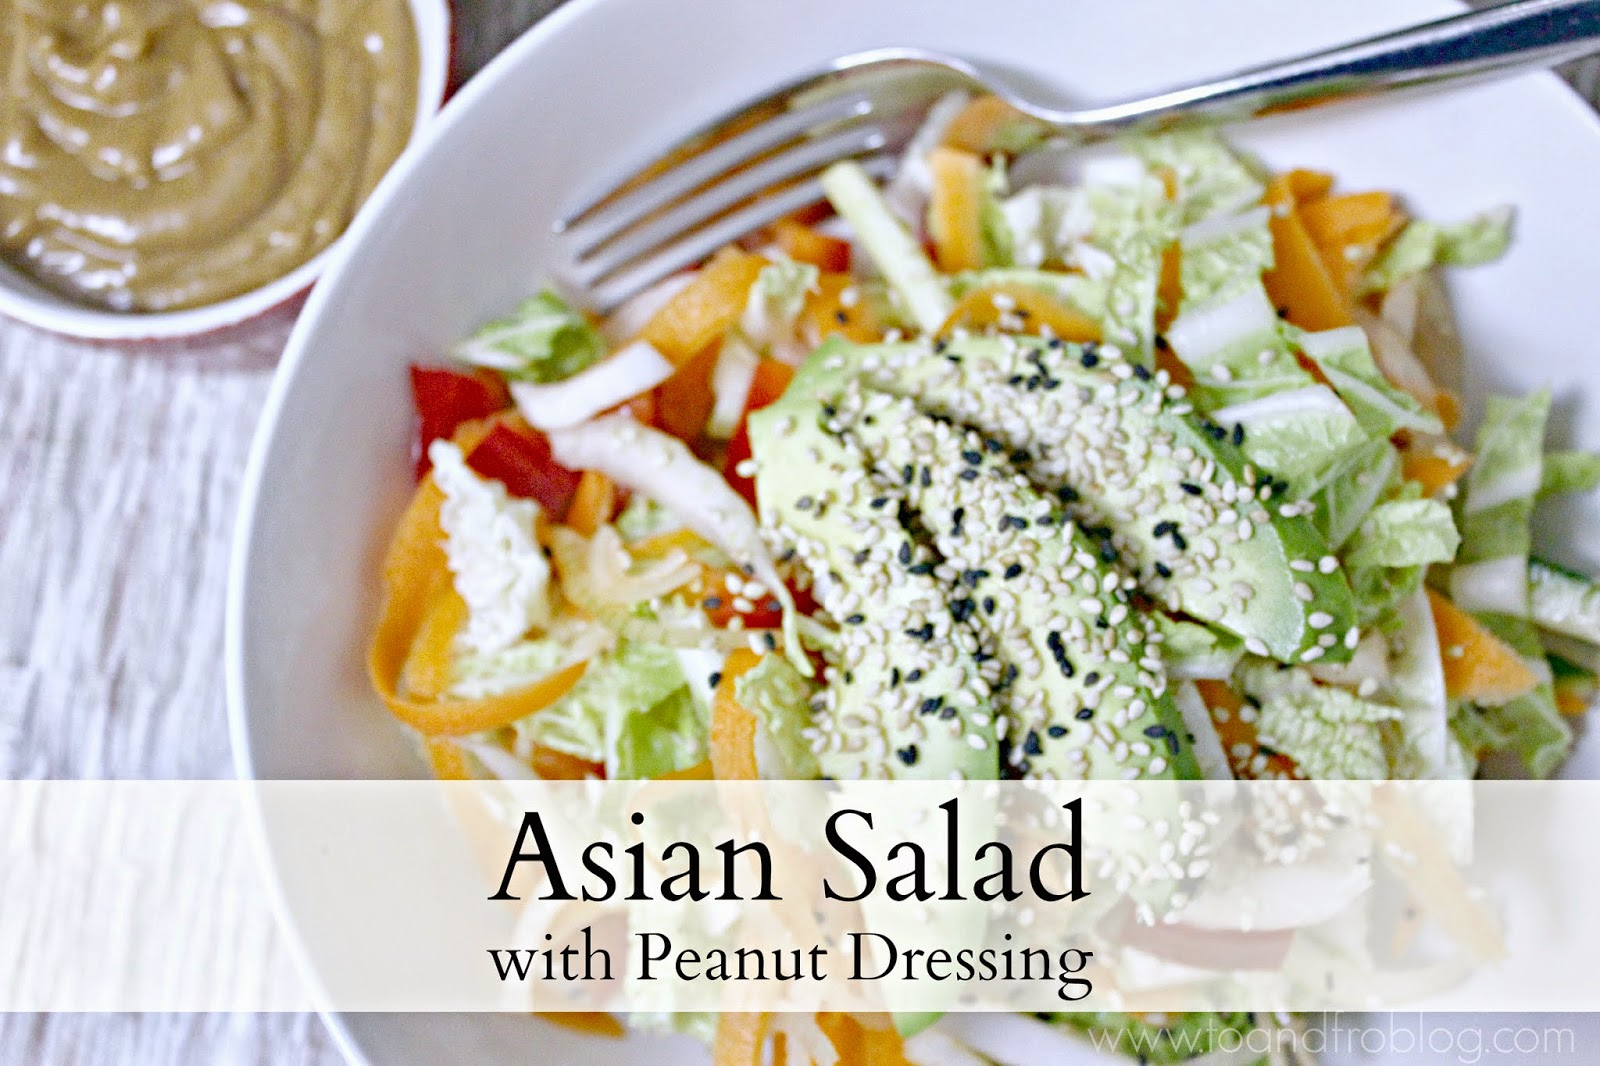 asian salad with peanut dressing recipe